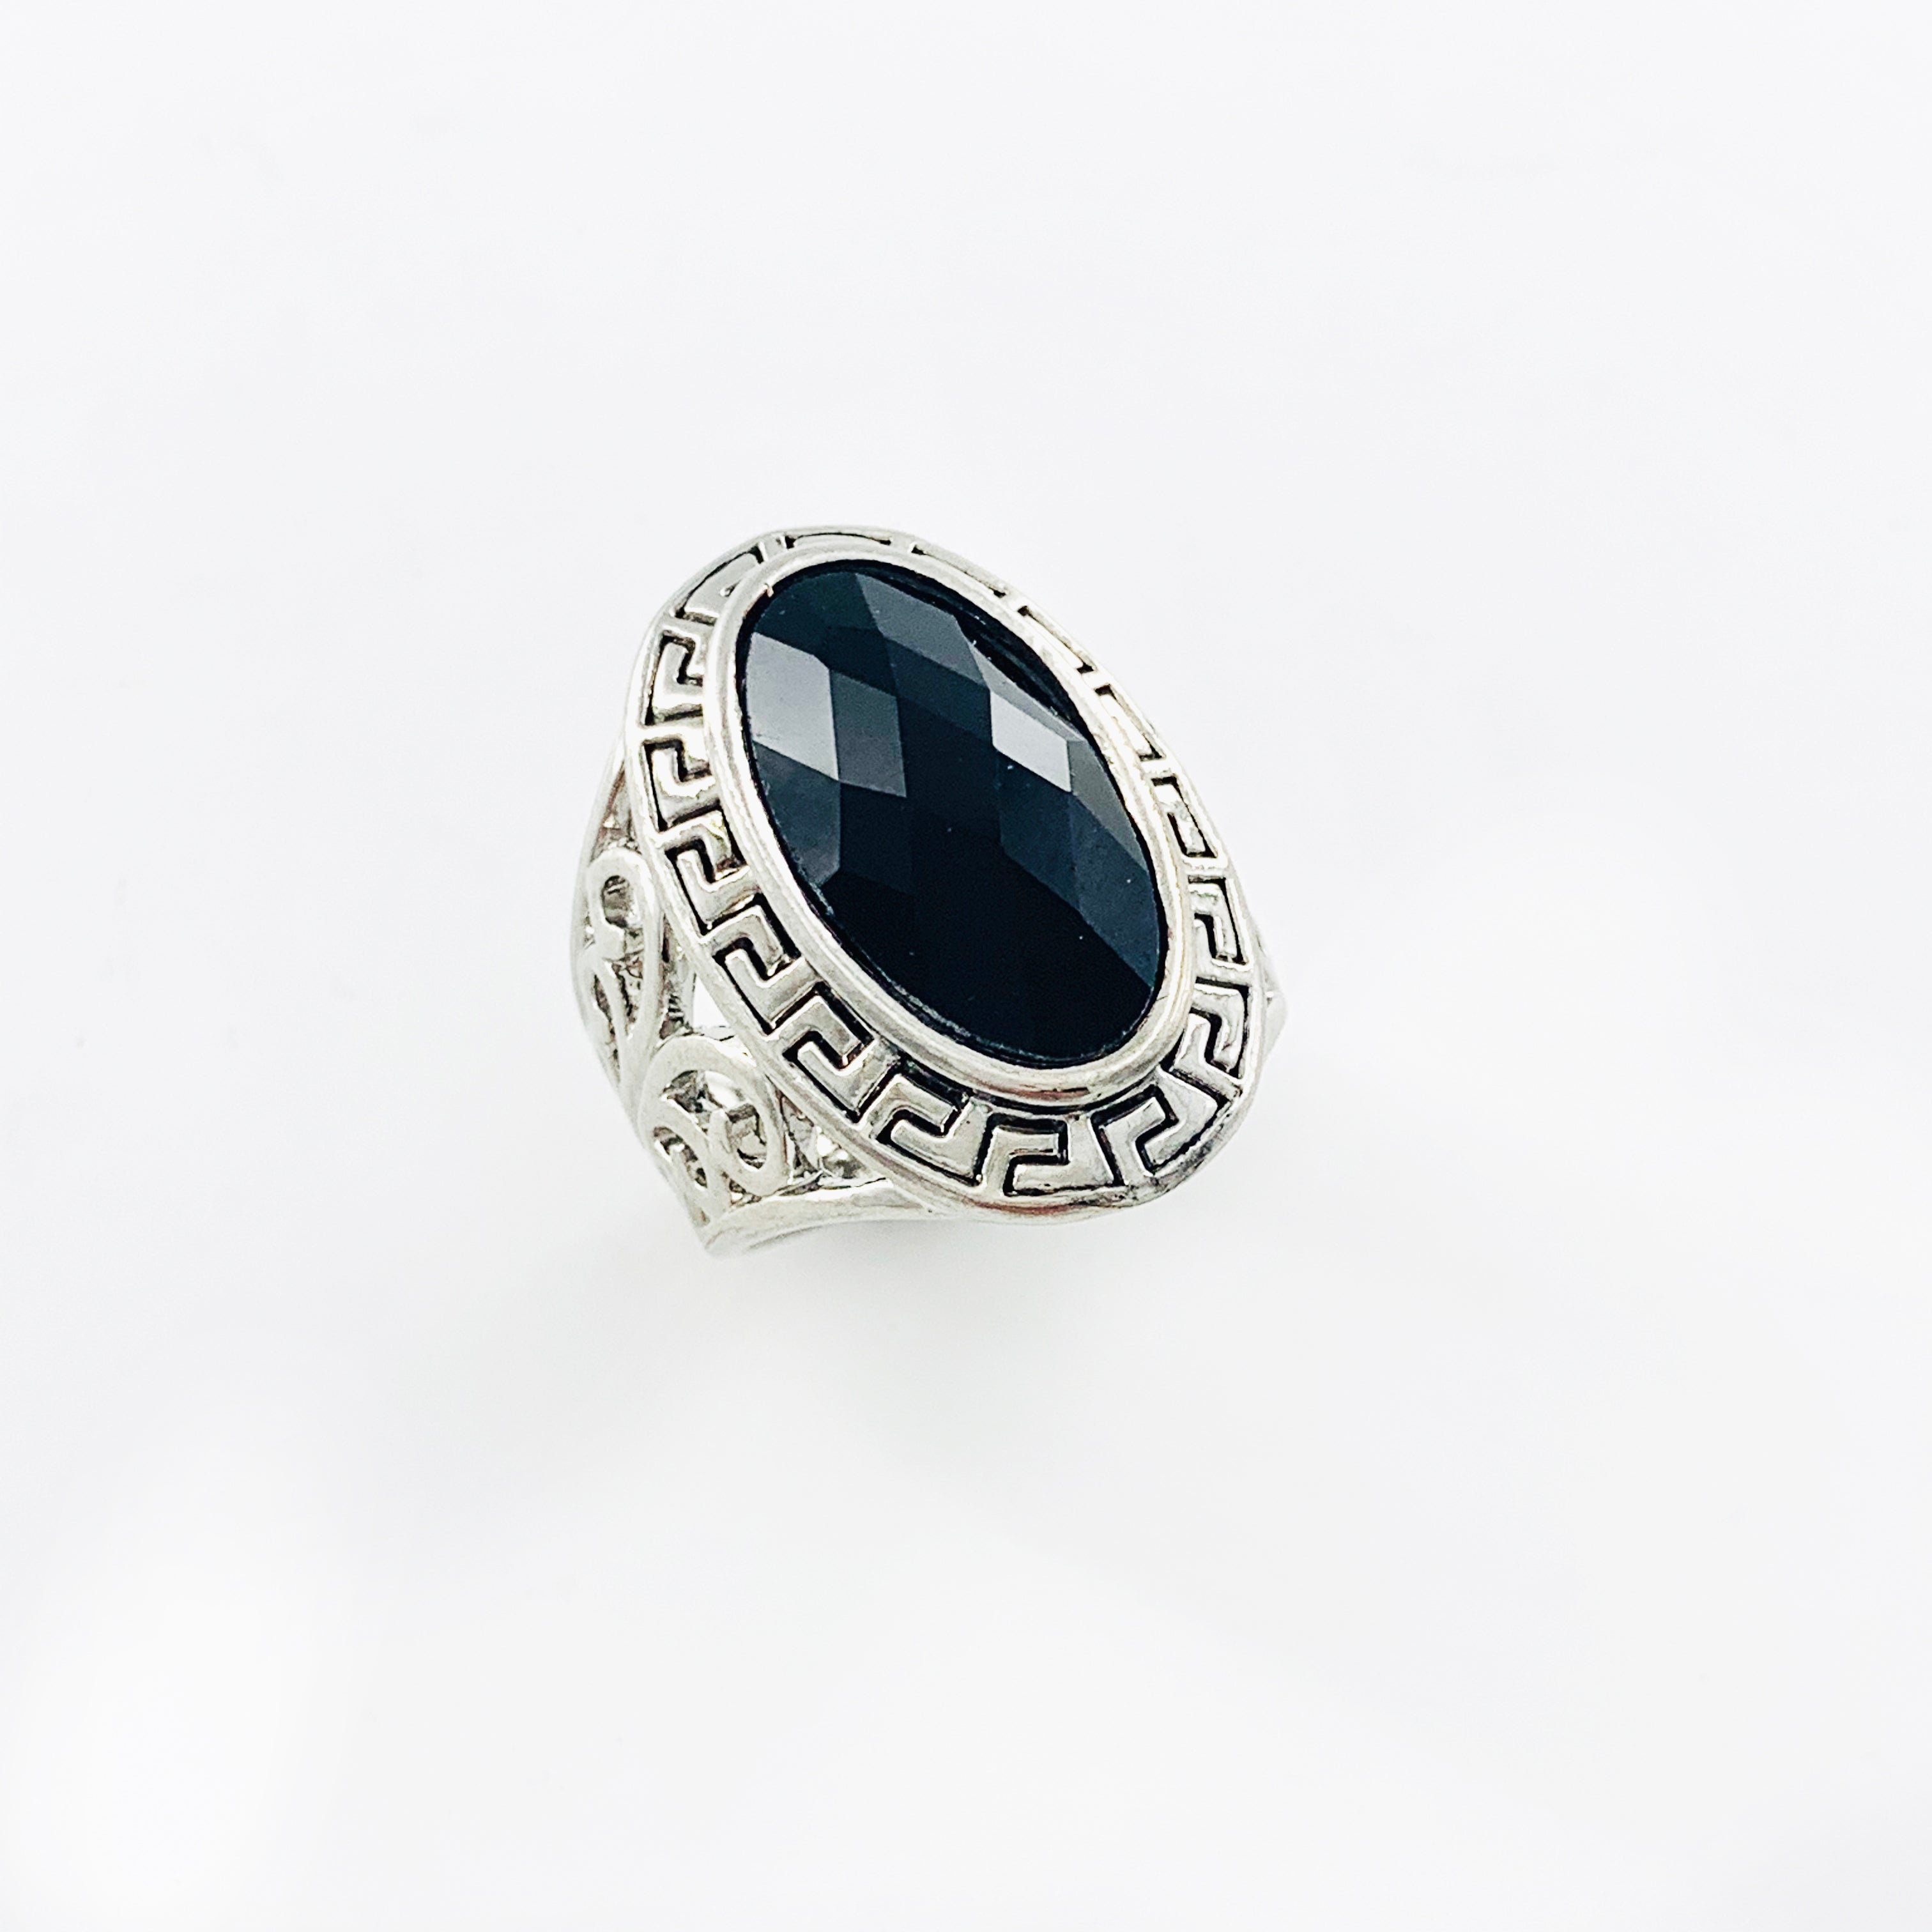 Chunky silver ring with black facet stone